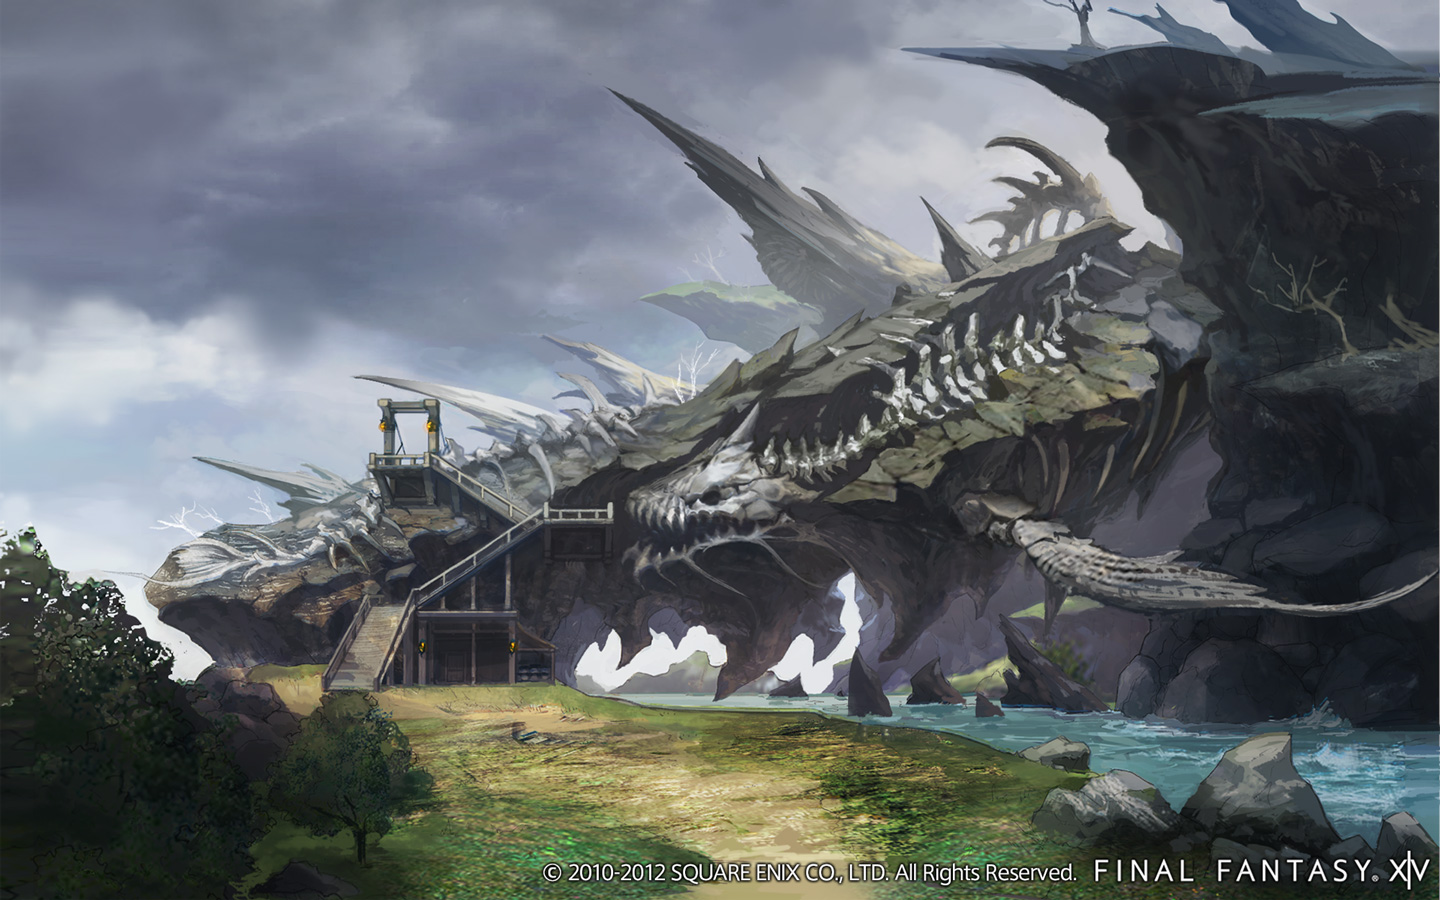 Free Final Fantasy XIV Wallpaper in 1440x900